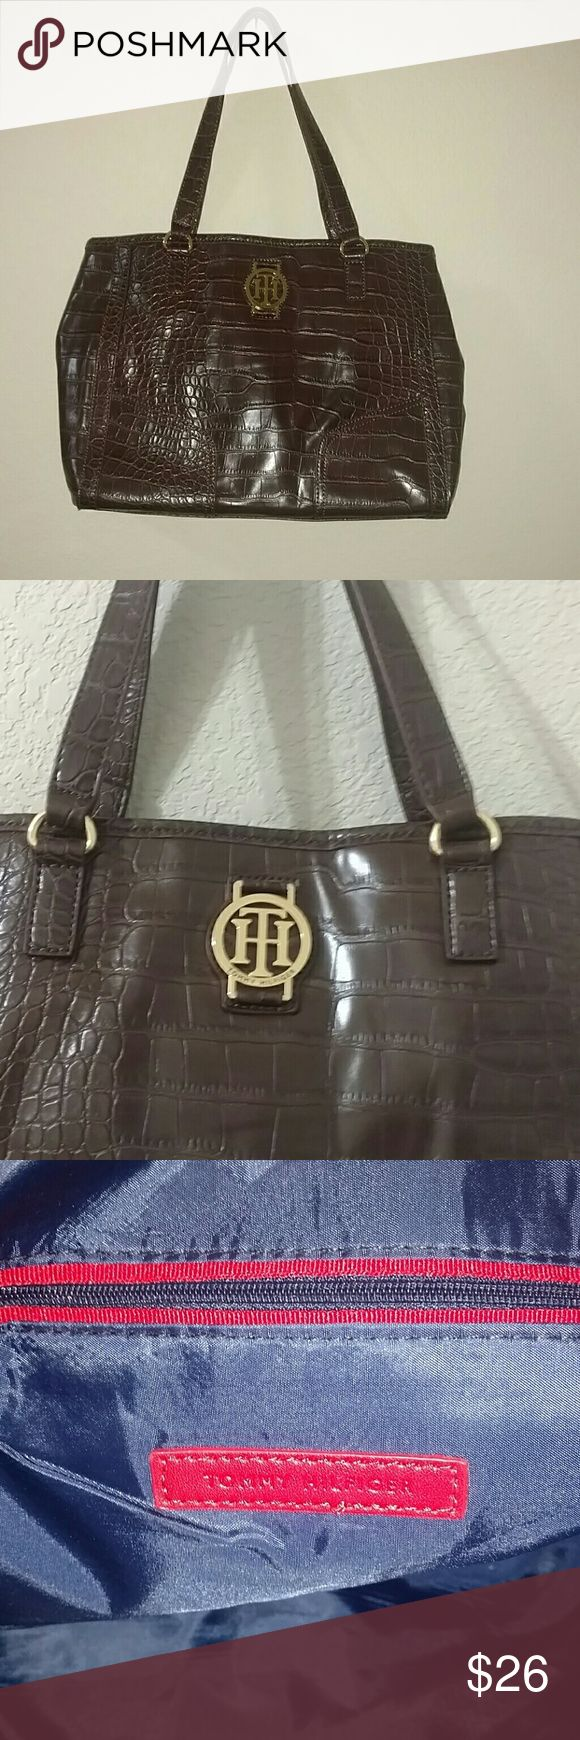 """Tommy Hilfiger Brown Purse Brown TH handbag. New w/out tags. Approx 14"""" wide by 10"""" high. Lots of inside space with center zippered pocket. Tommy Hilfiger Bags"""